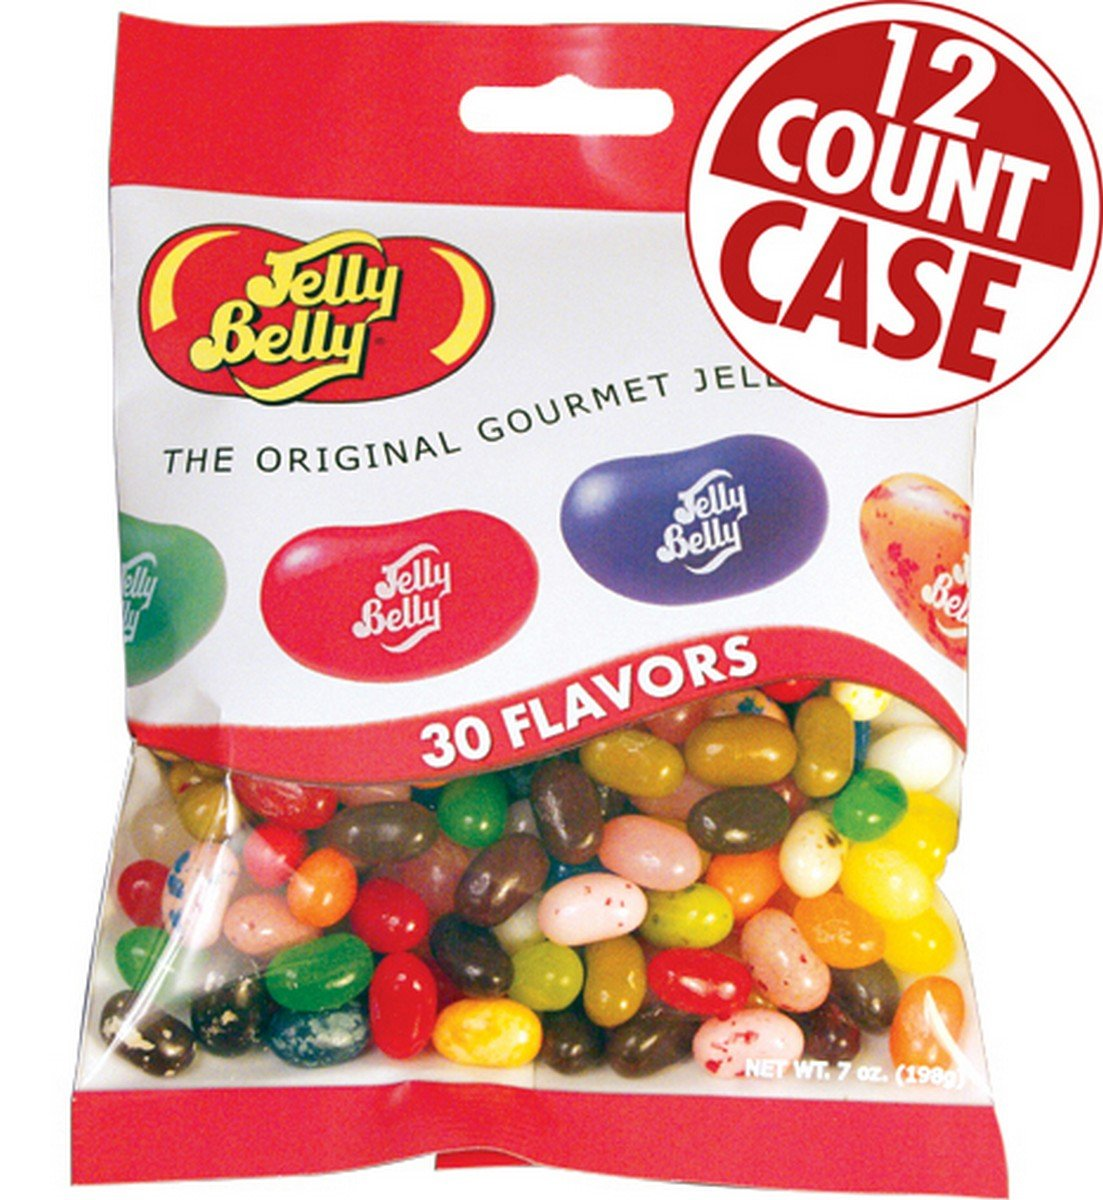 Jelly Belly Jelly Beans, 30 Flavors, 7-oz, 12 Pack